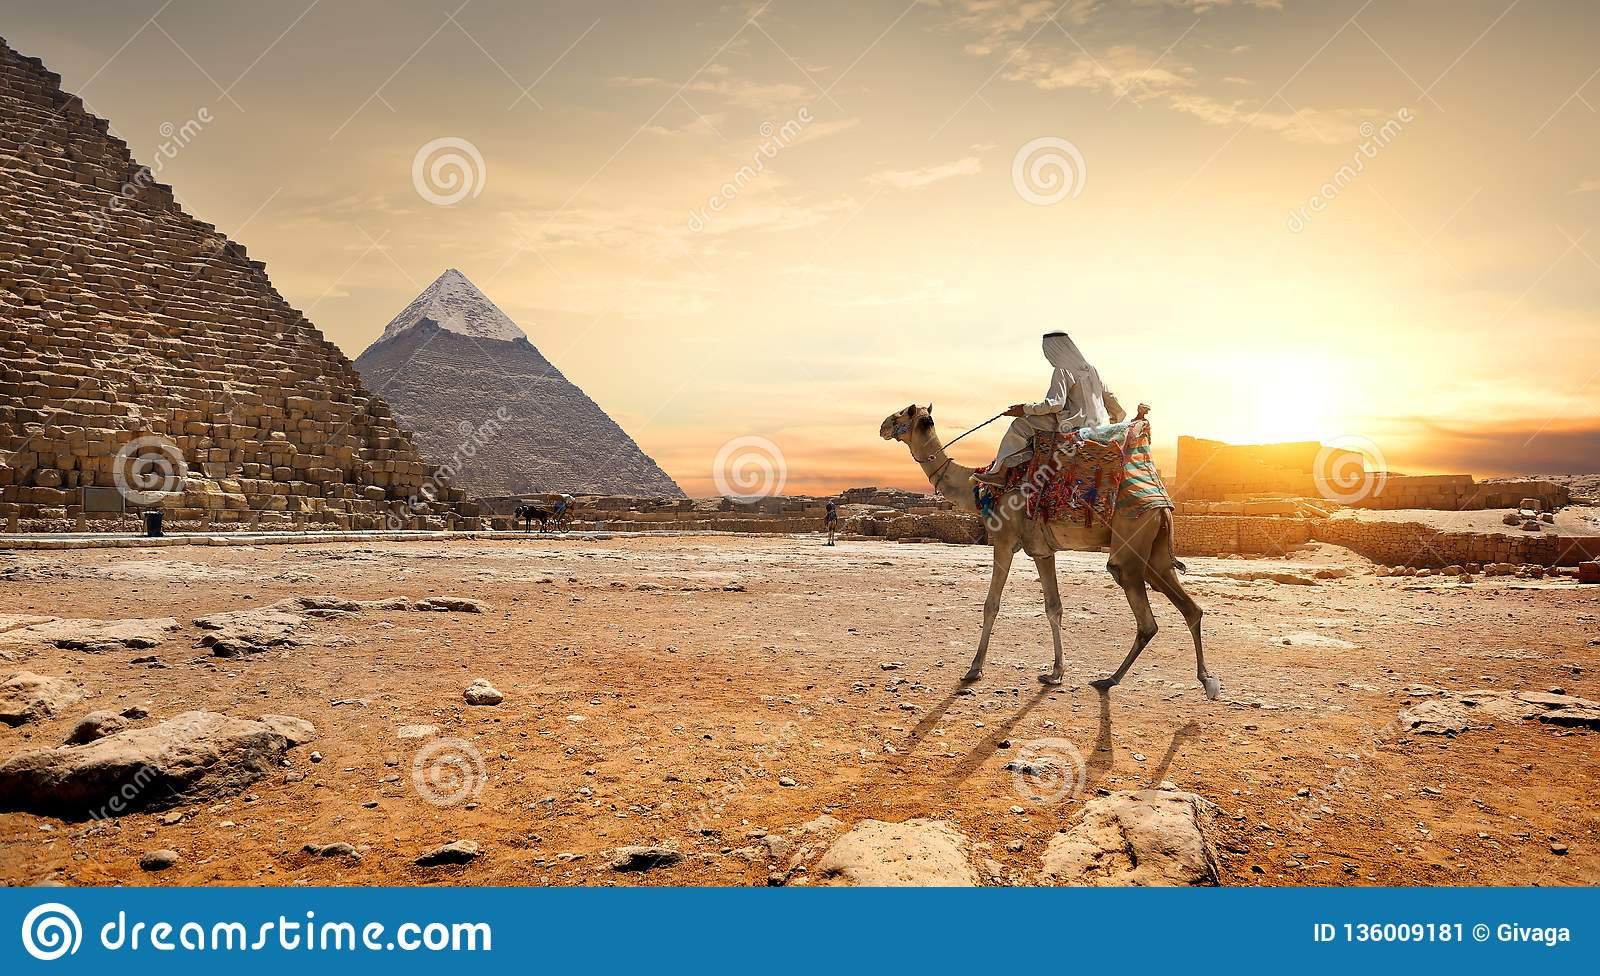 Piramideslandschap Egypte